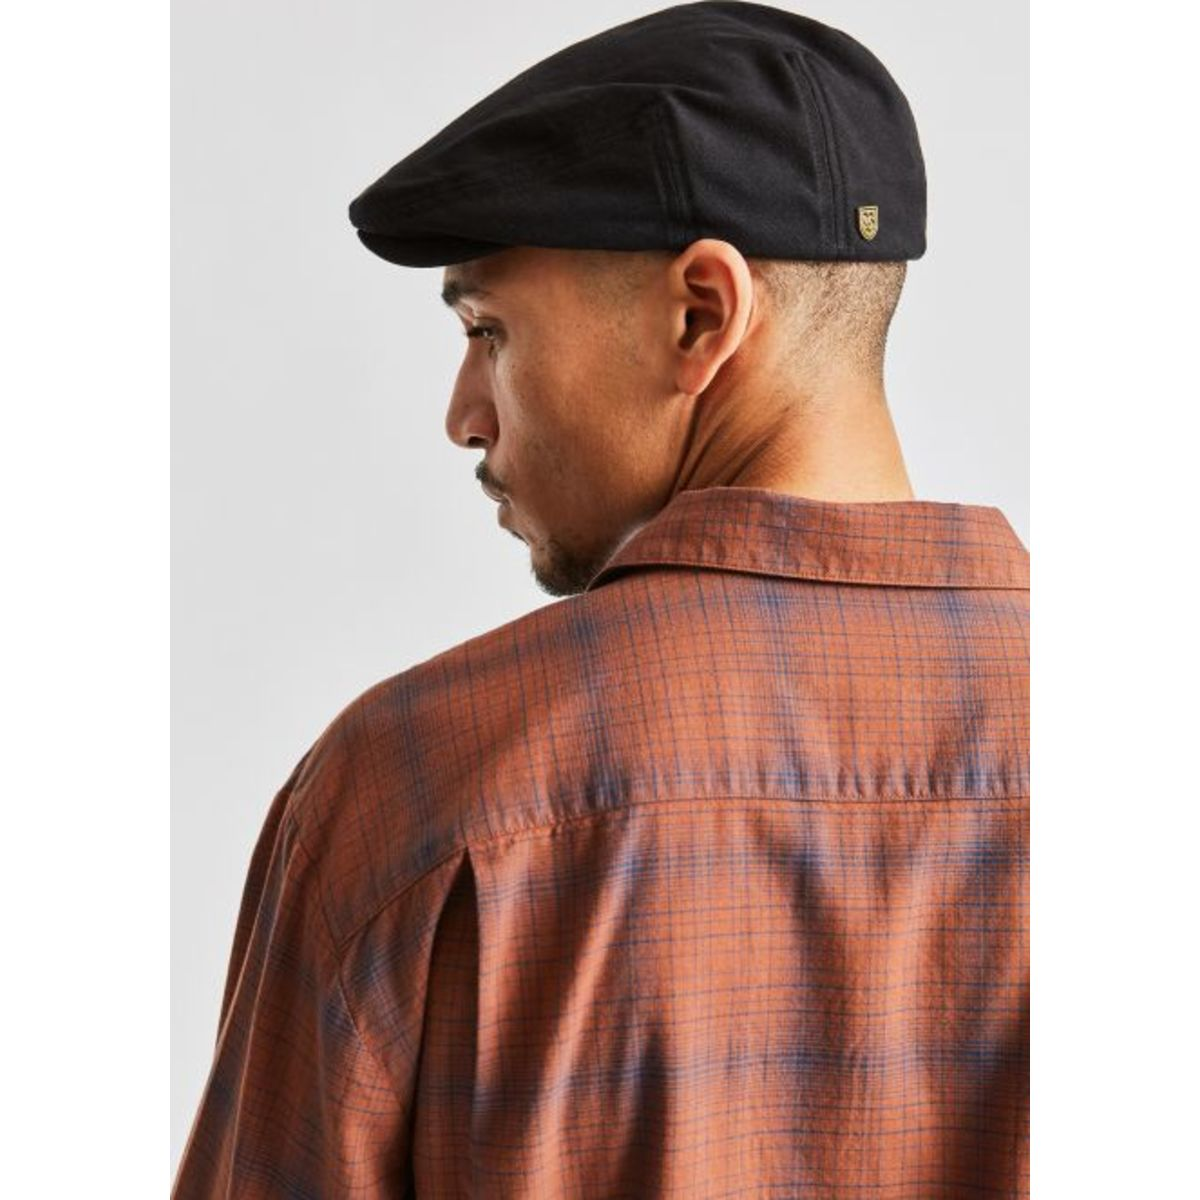 Brixton Hooligan Lightweight Snap Cap - Washed Copper/Hide